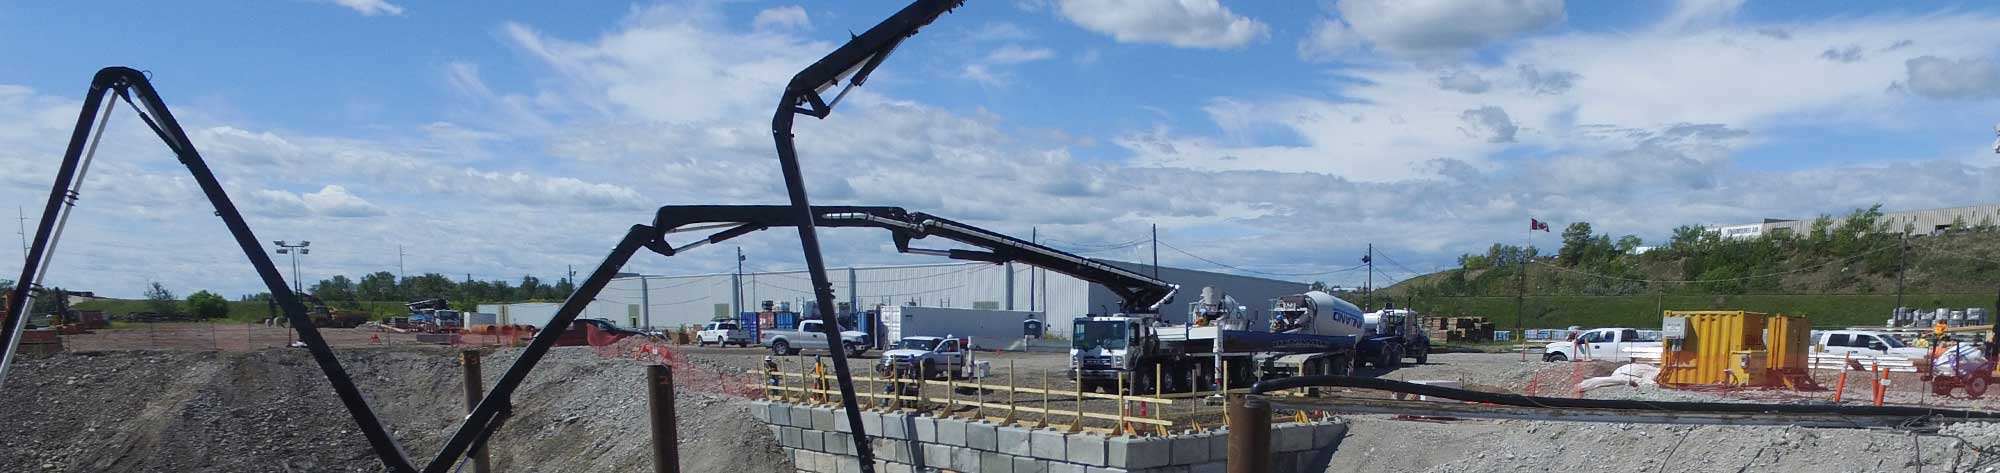 Dynamic Concrete Pumping boom pump being used on a project